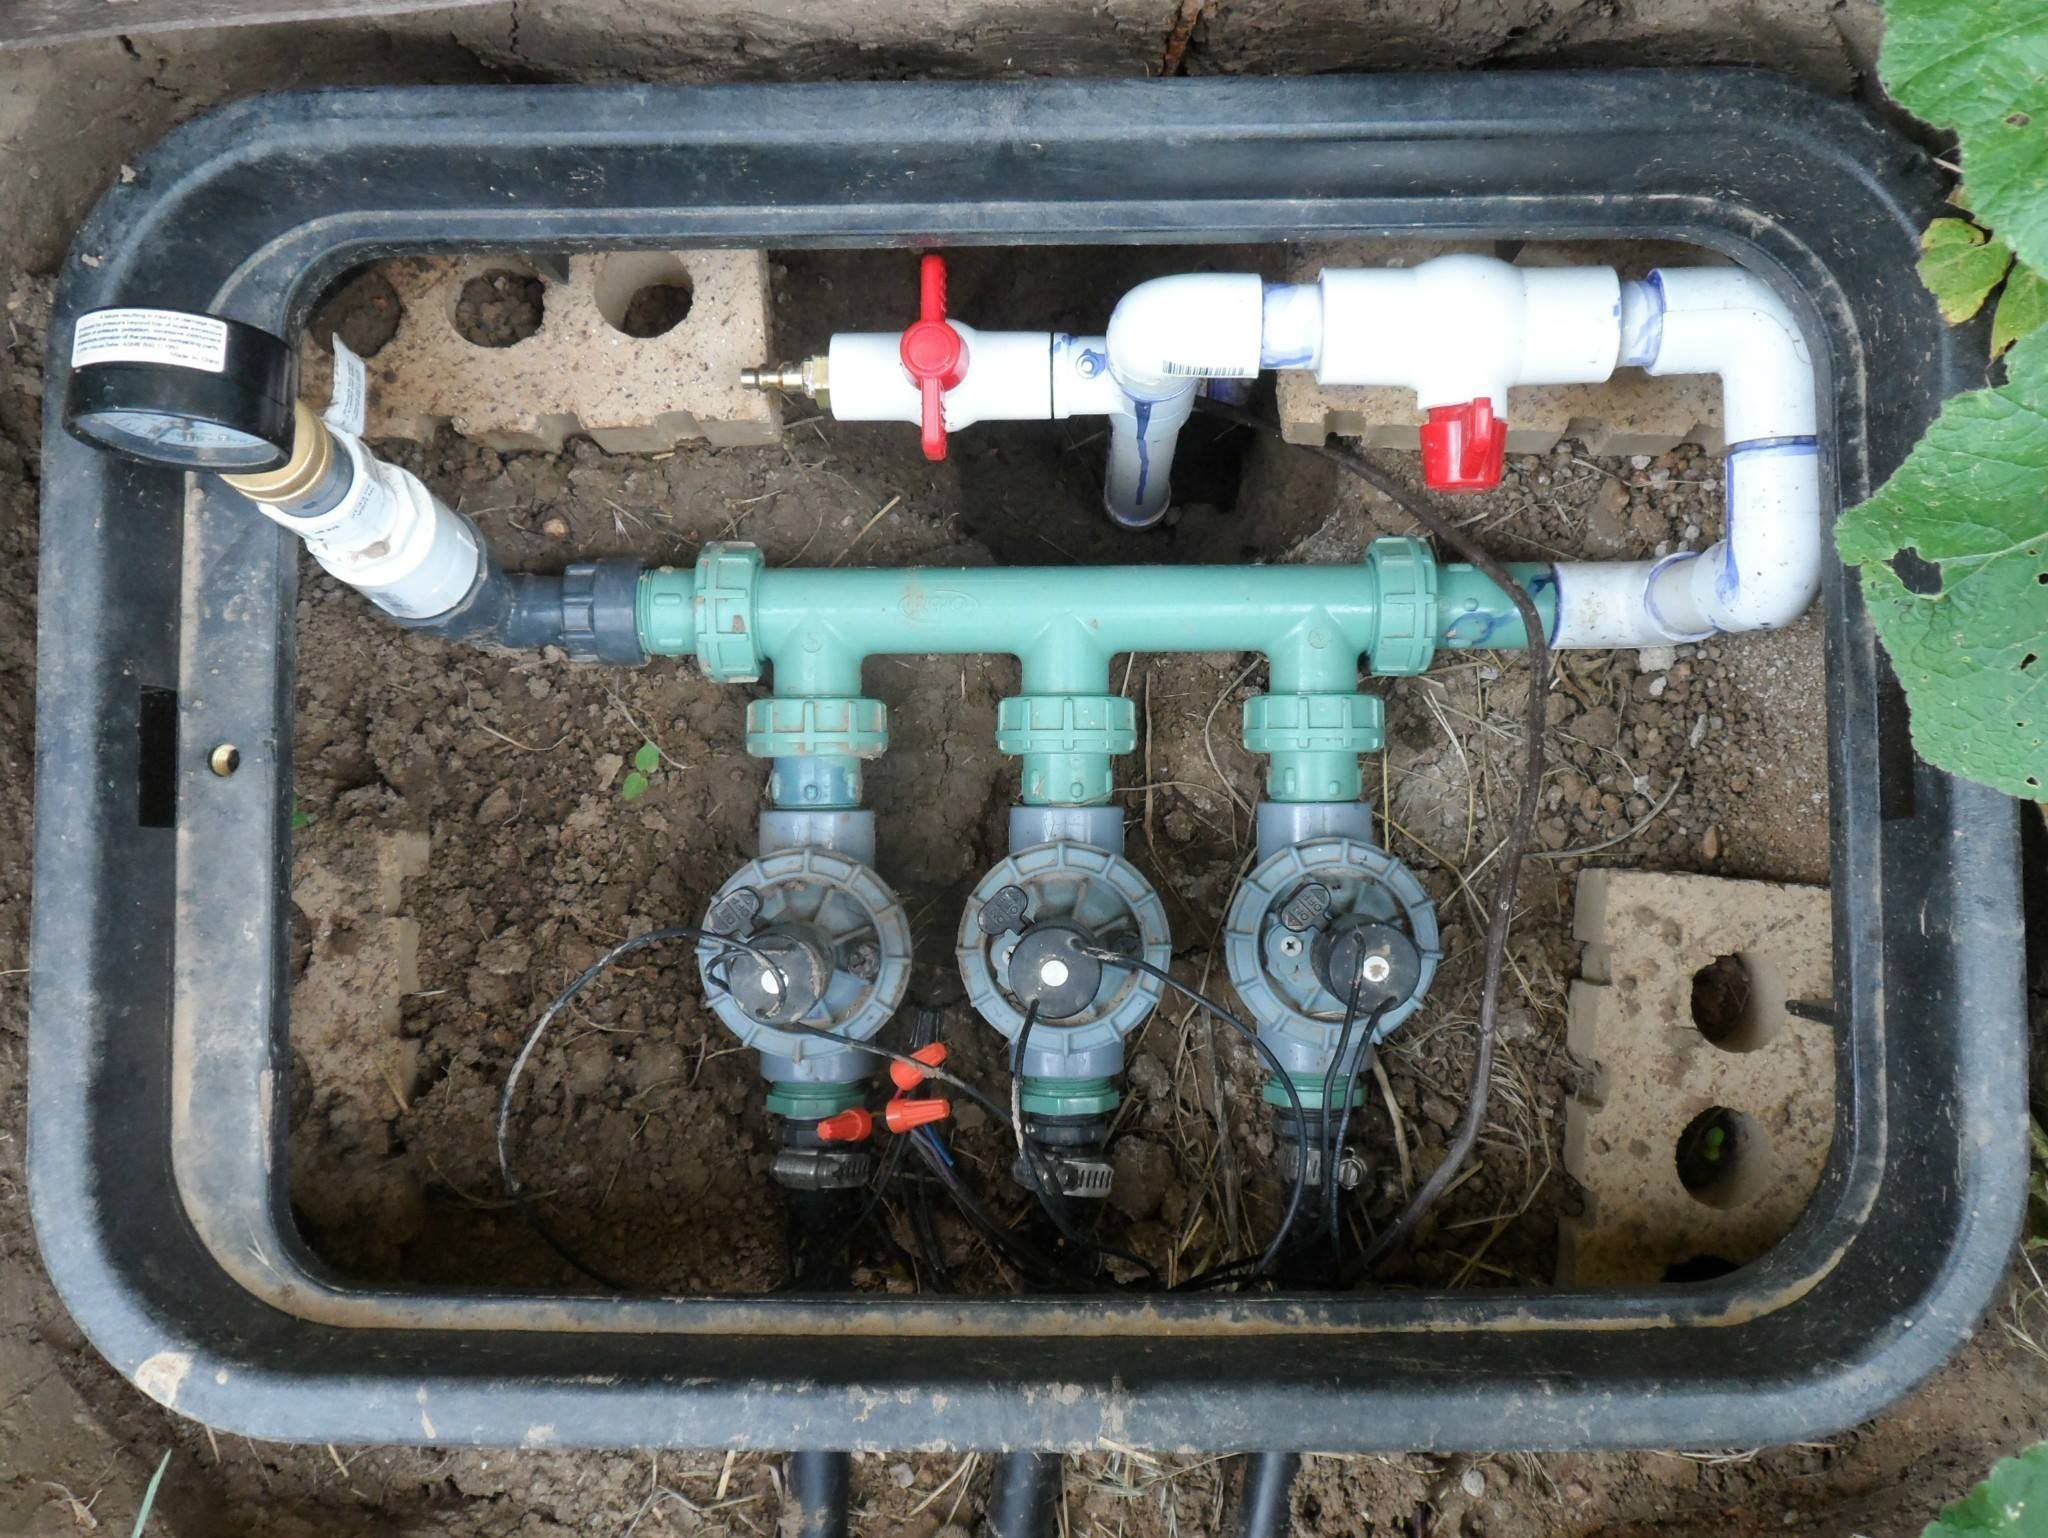 Expandable Sprinkler Manifold Landscaping Pinterest Sprinkler Irrigation And Gardens